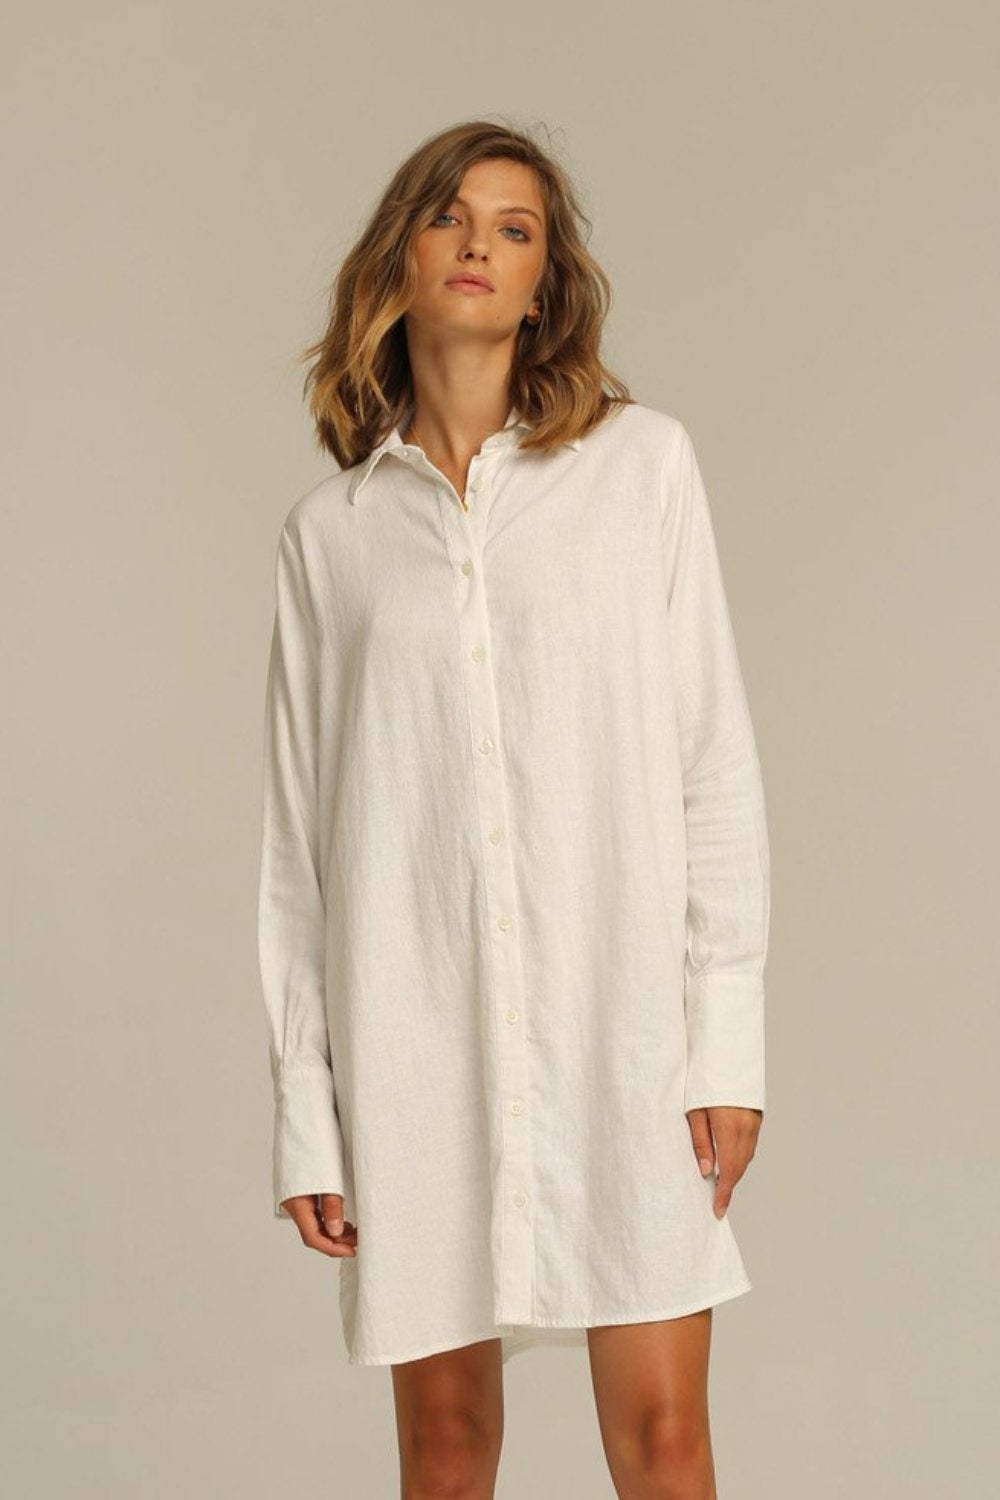 Estrella Shirt Dress / White